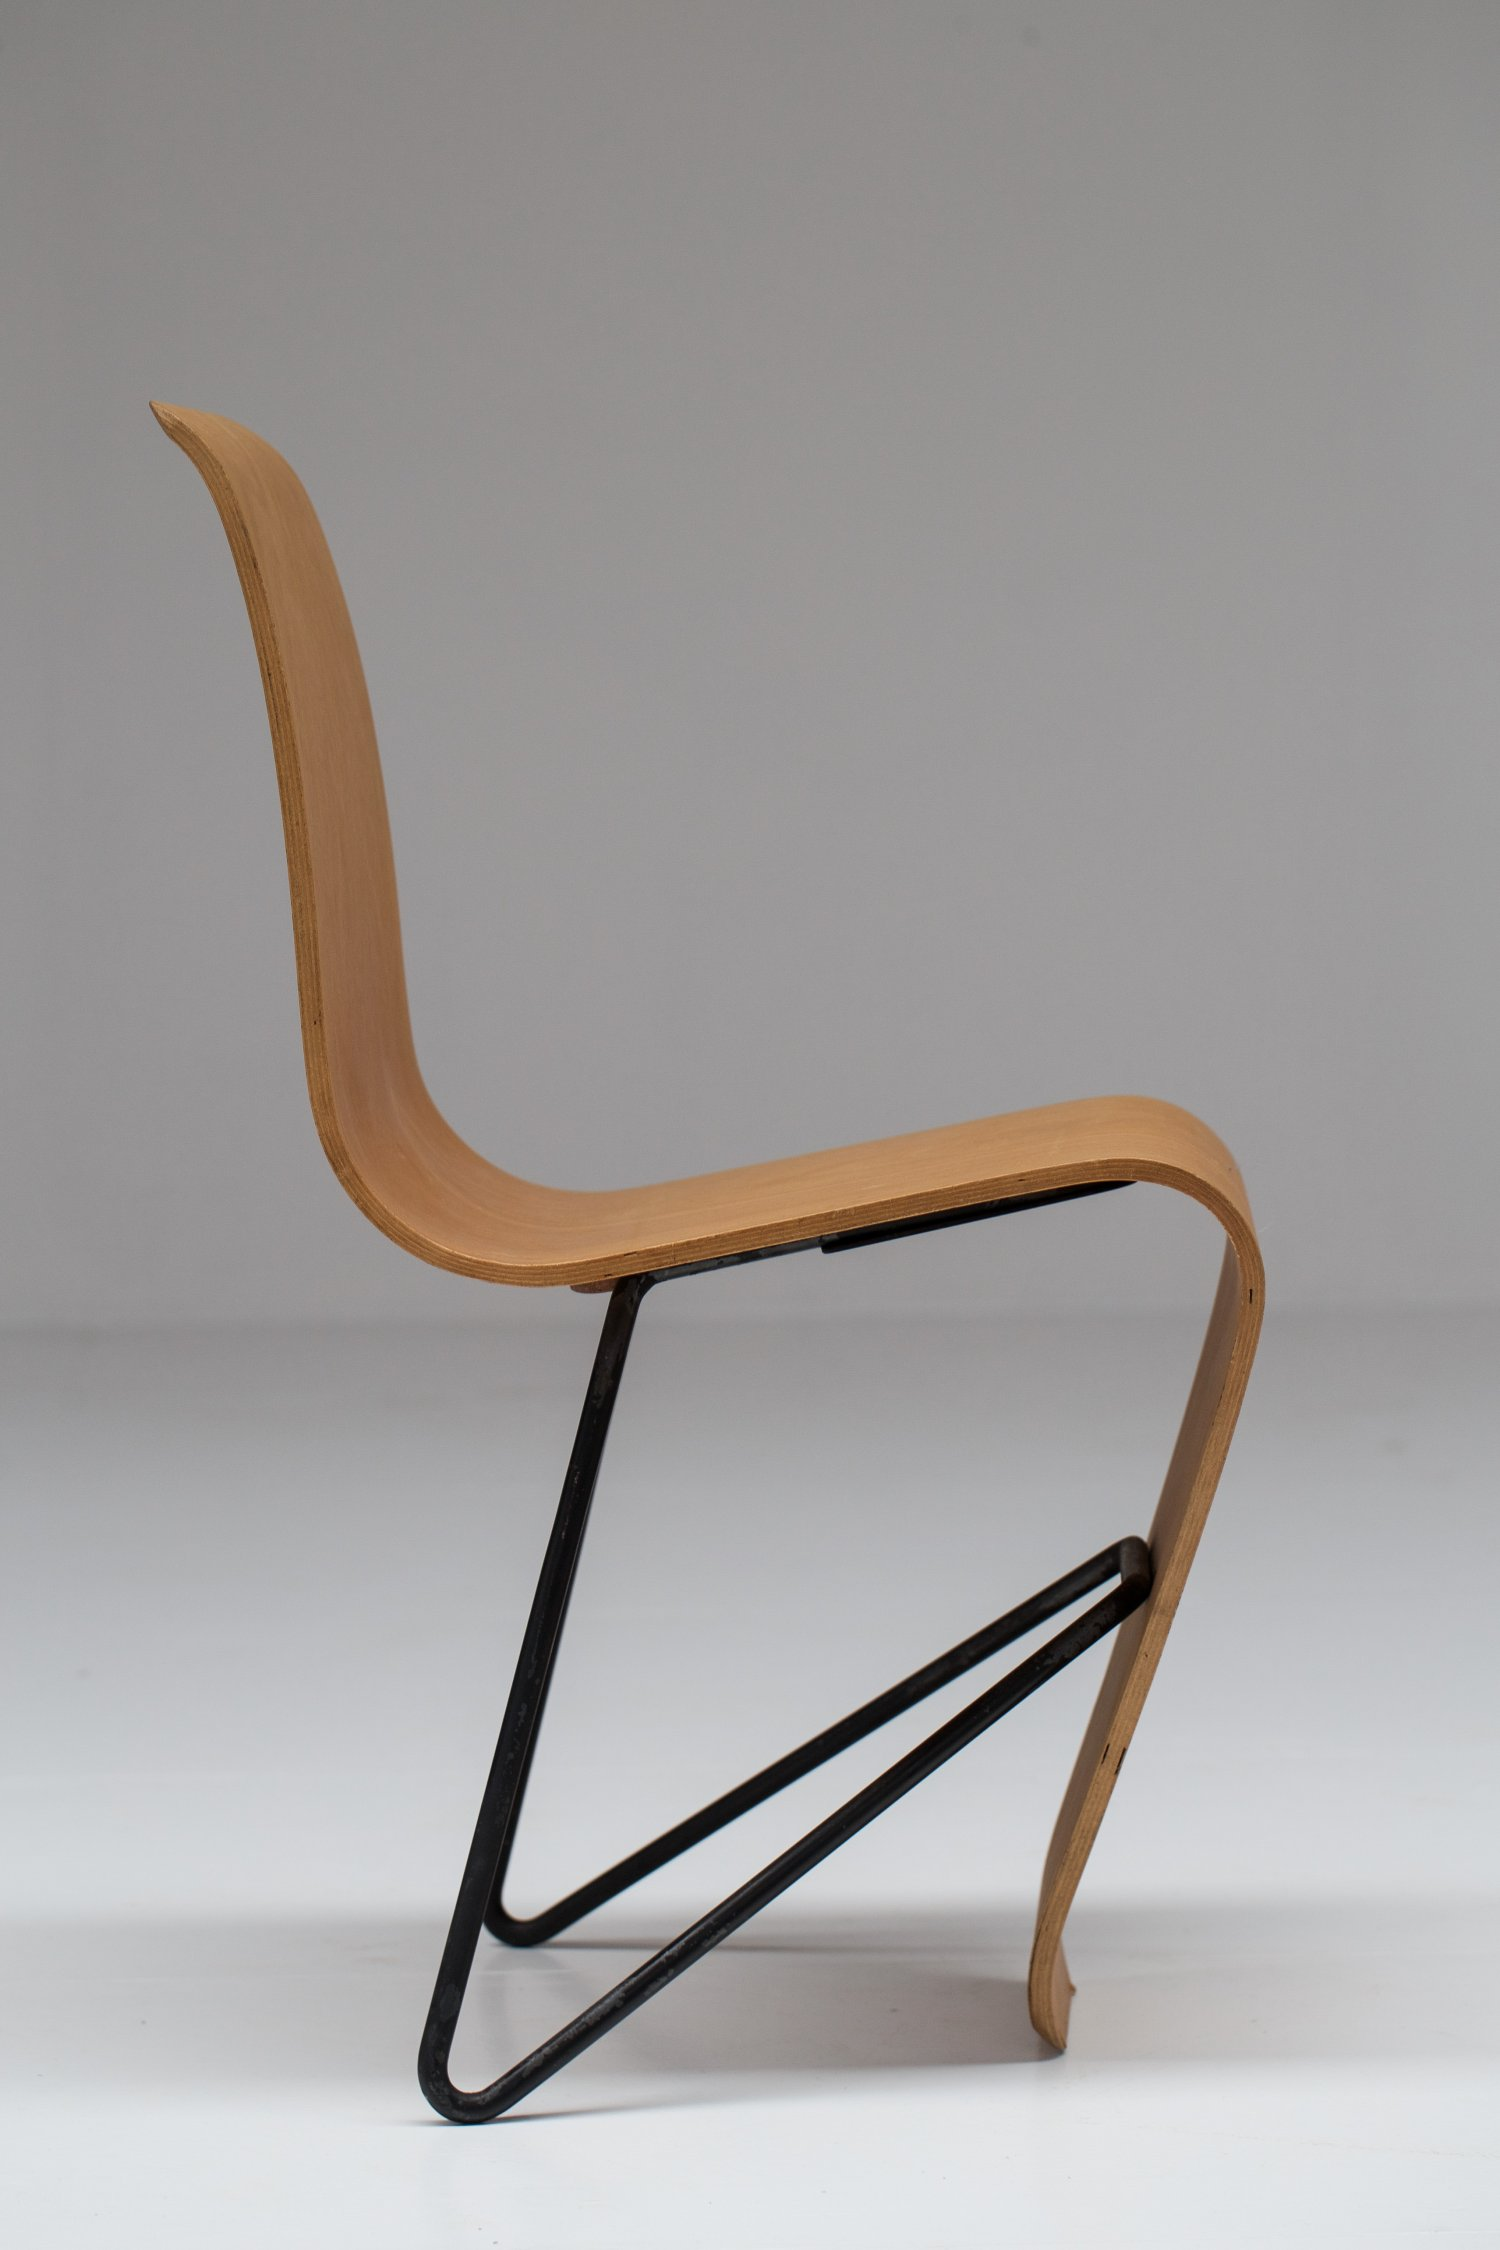 André Bloc chair 'Bellevue'